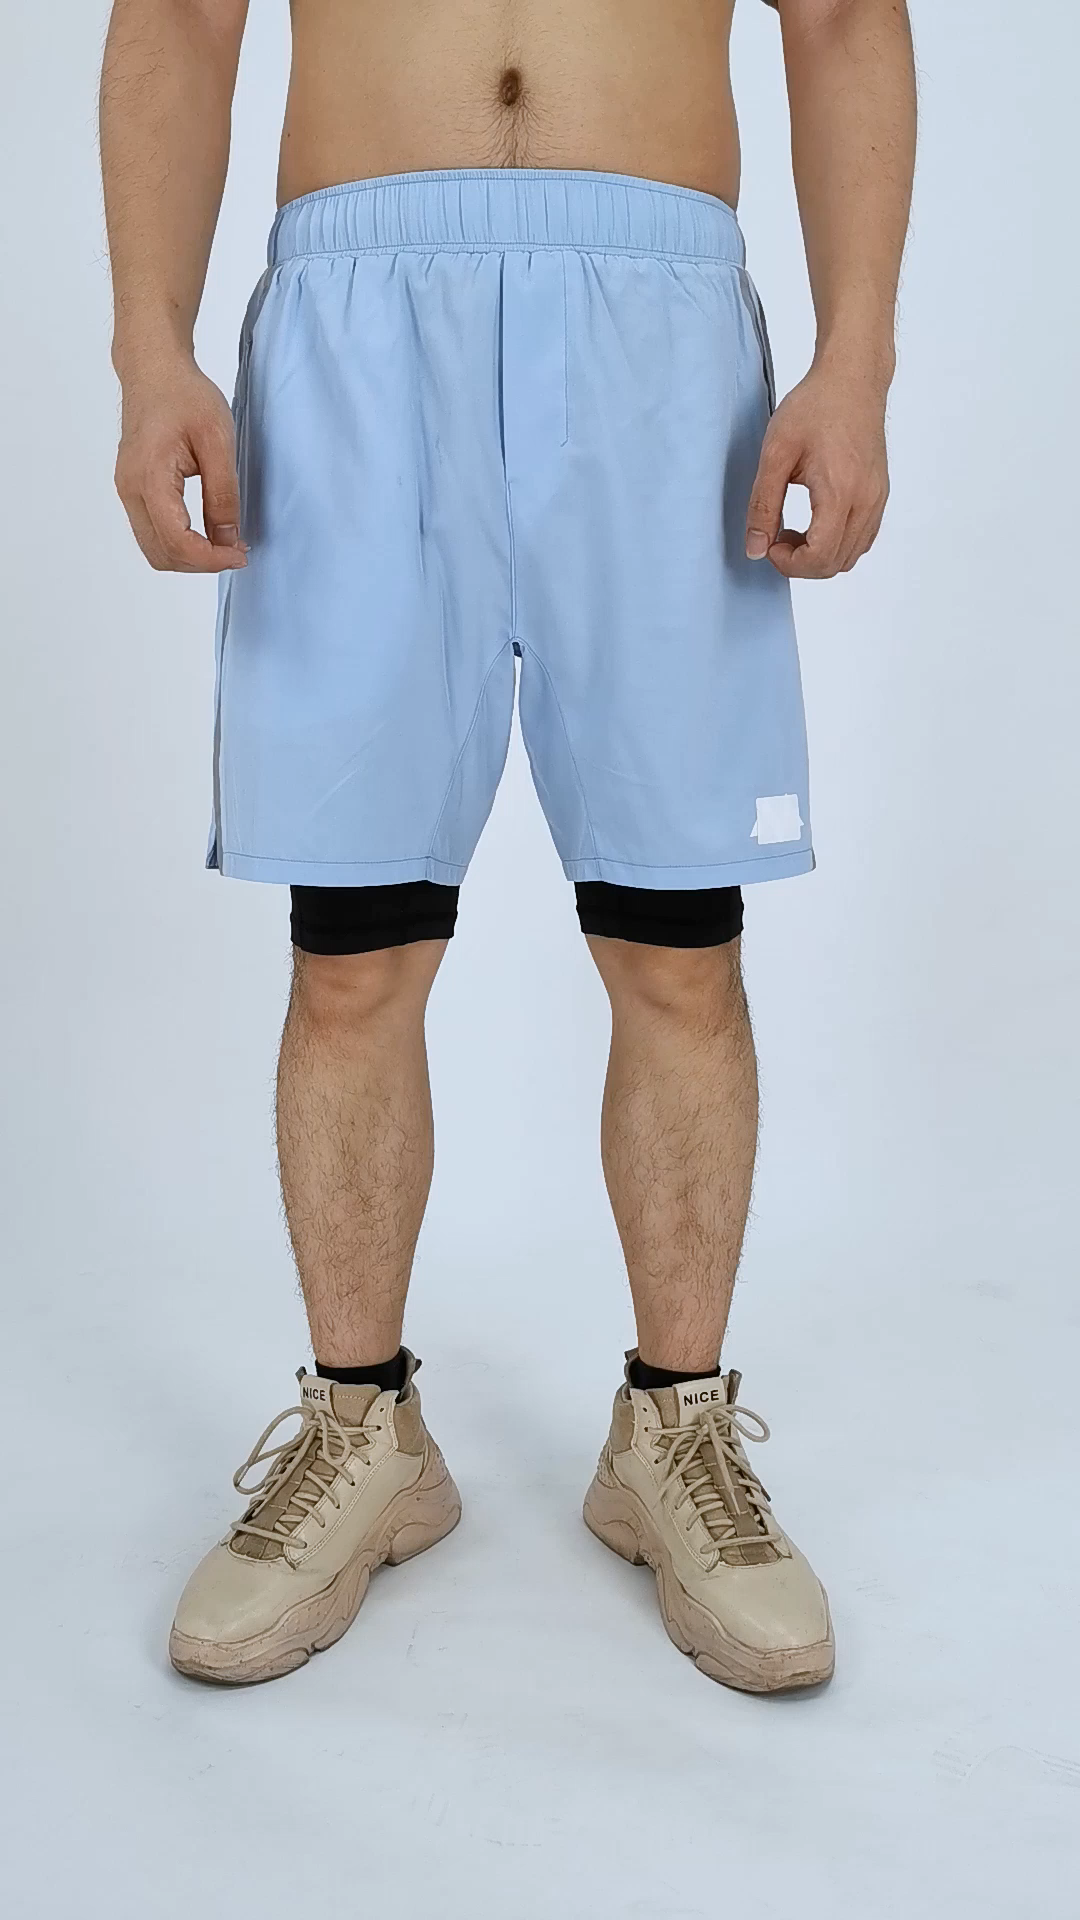 Fitness Gym Sportswear Polyester Fabric Plain Color Shorts for Men